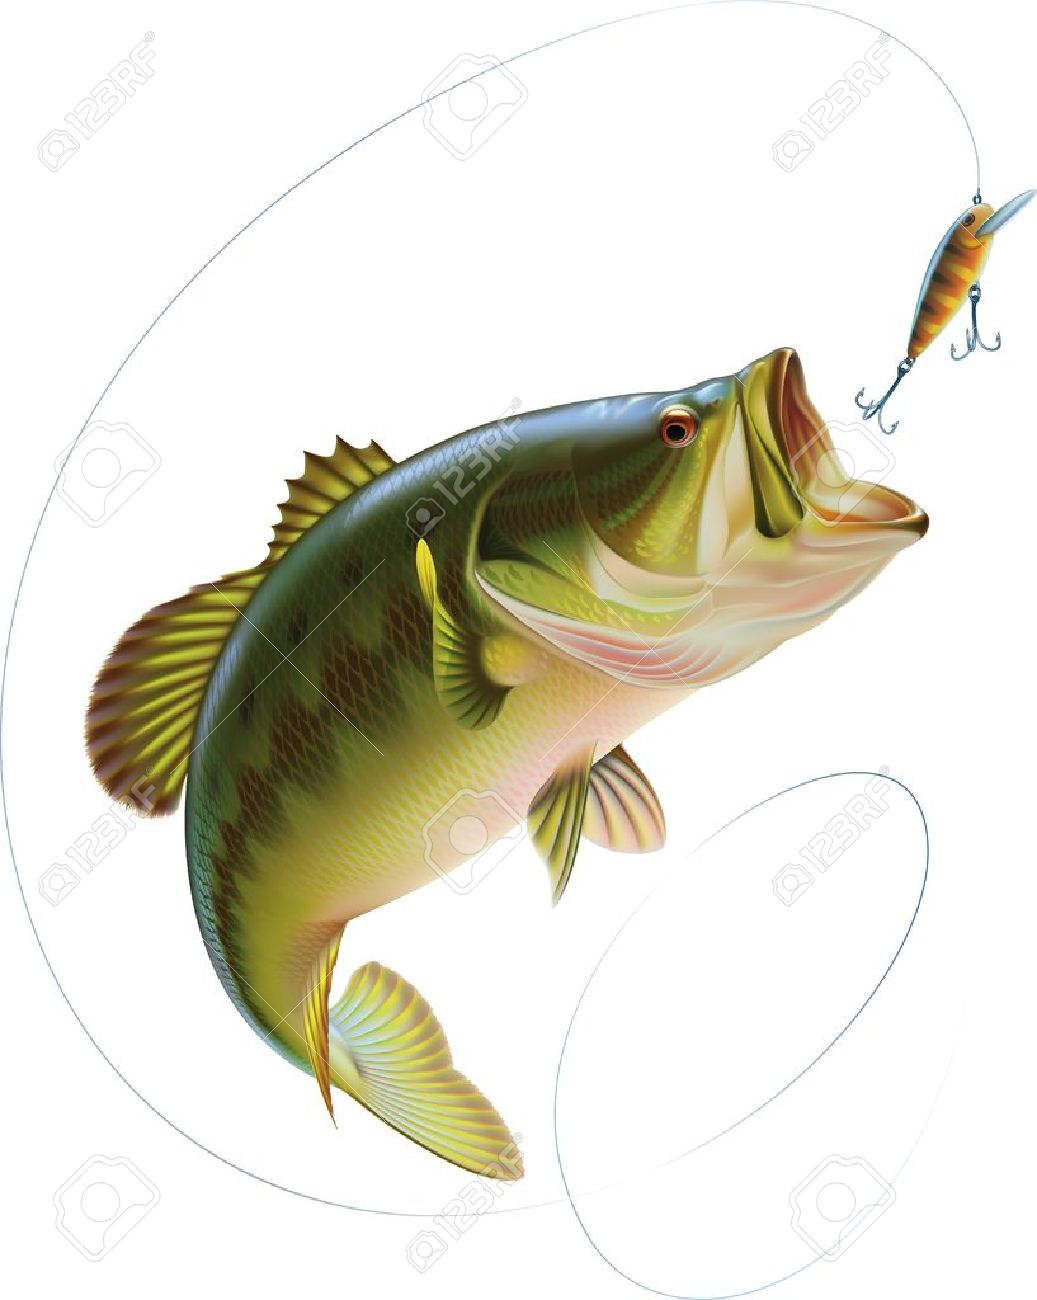 Freshwater fish clipart - Freshwater Largemouth Bass Is Catching A Bite And Jumping In Water Spray Layered Vector Illustration